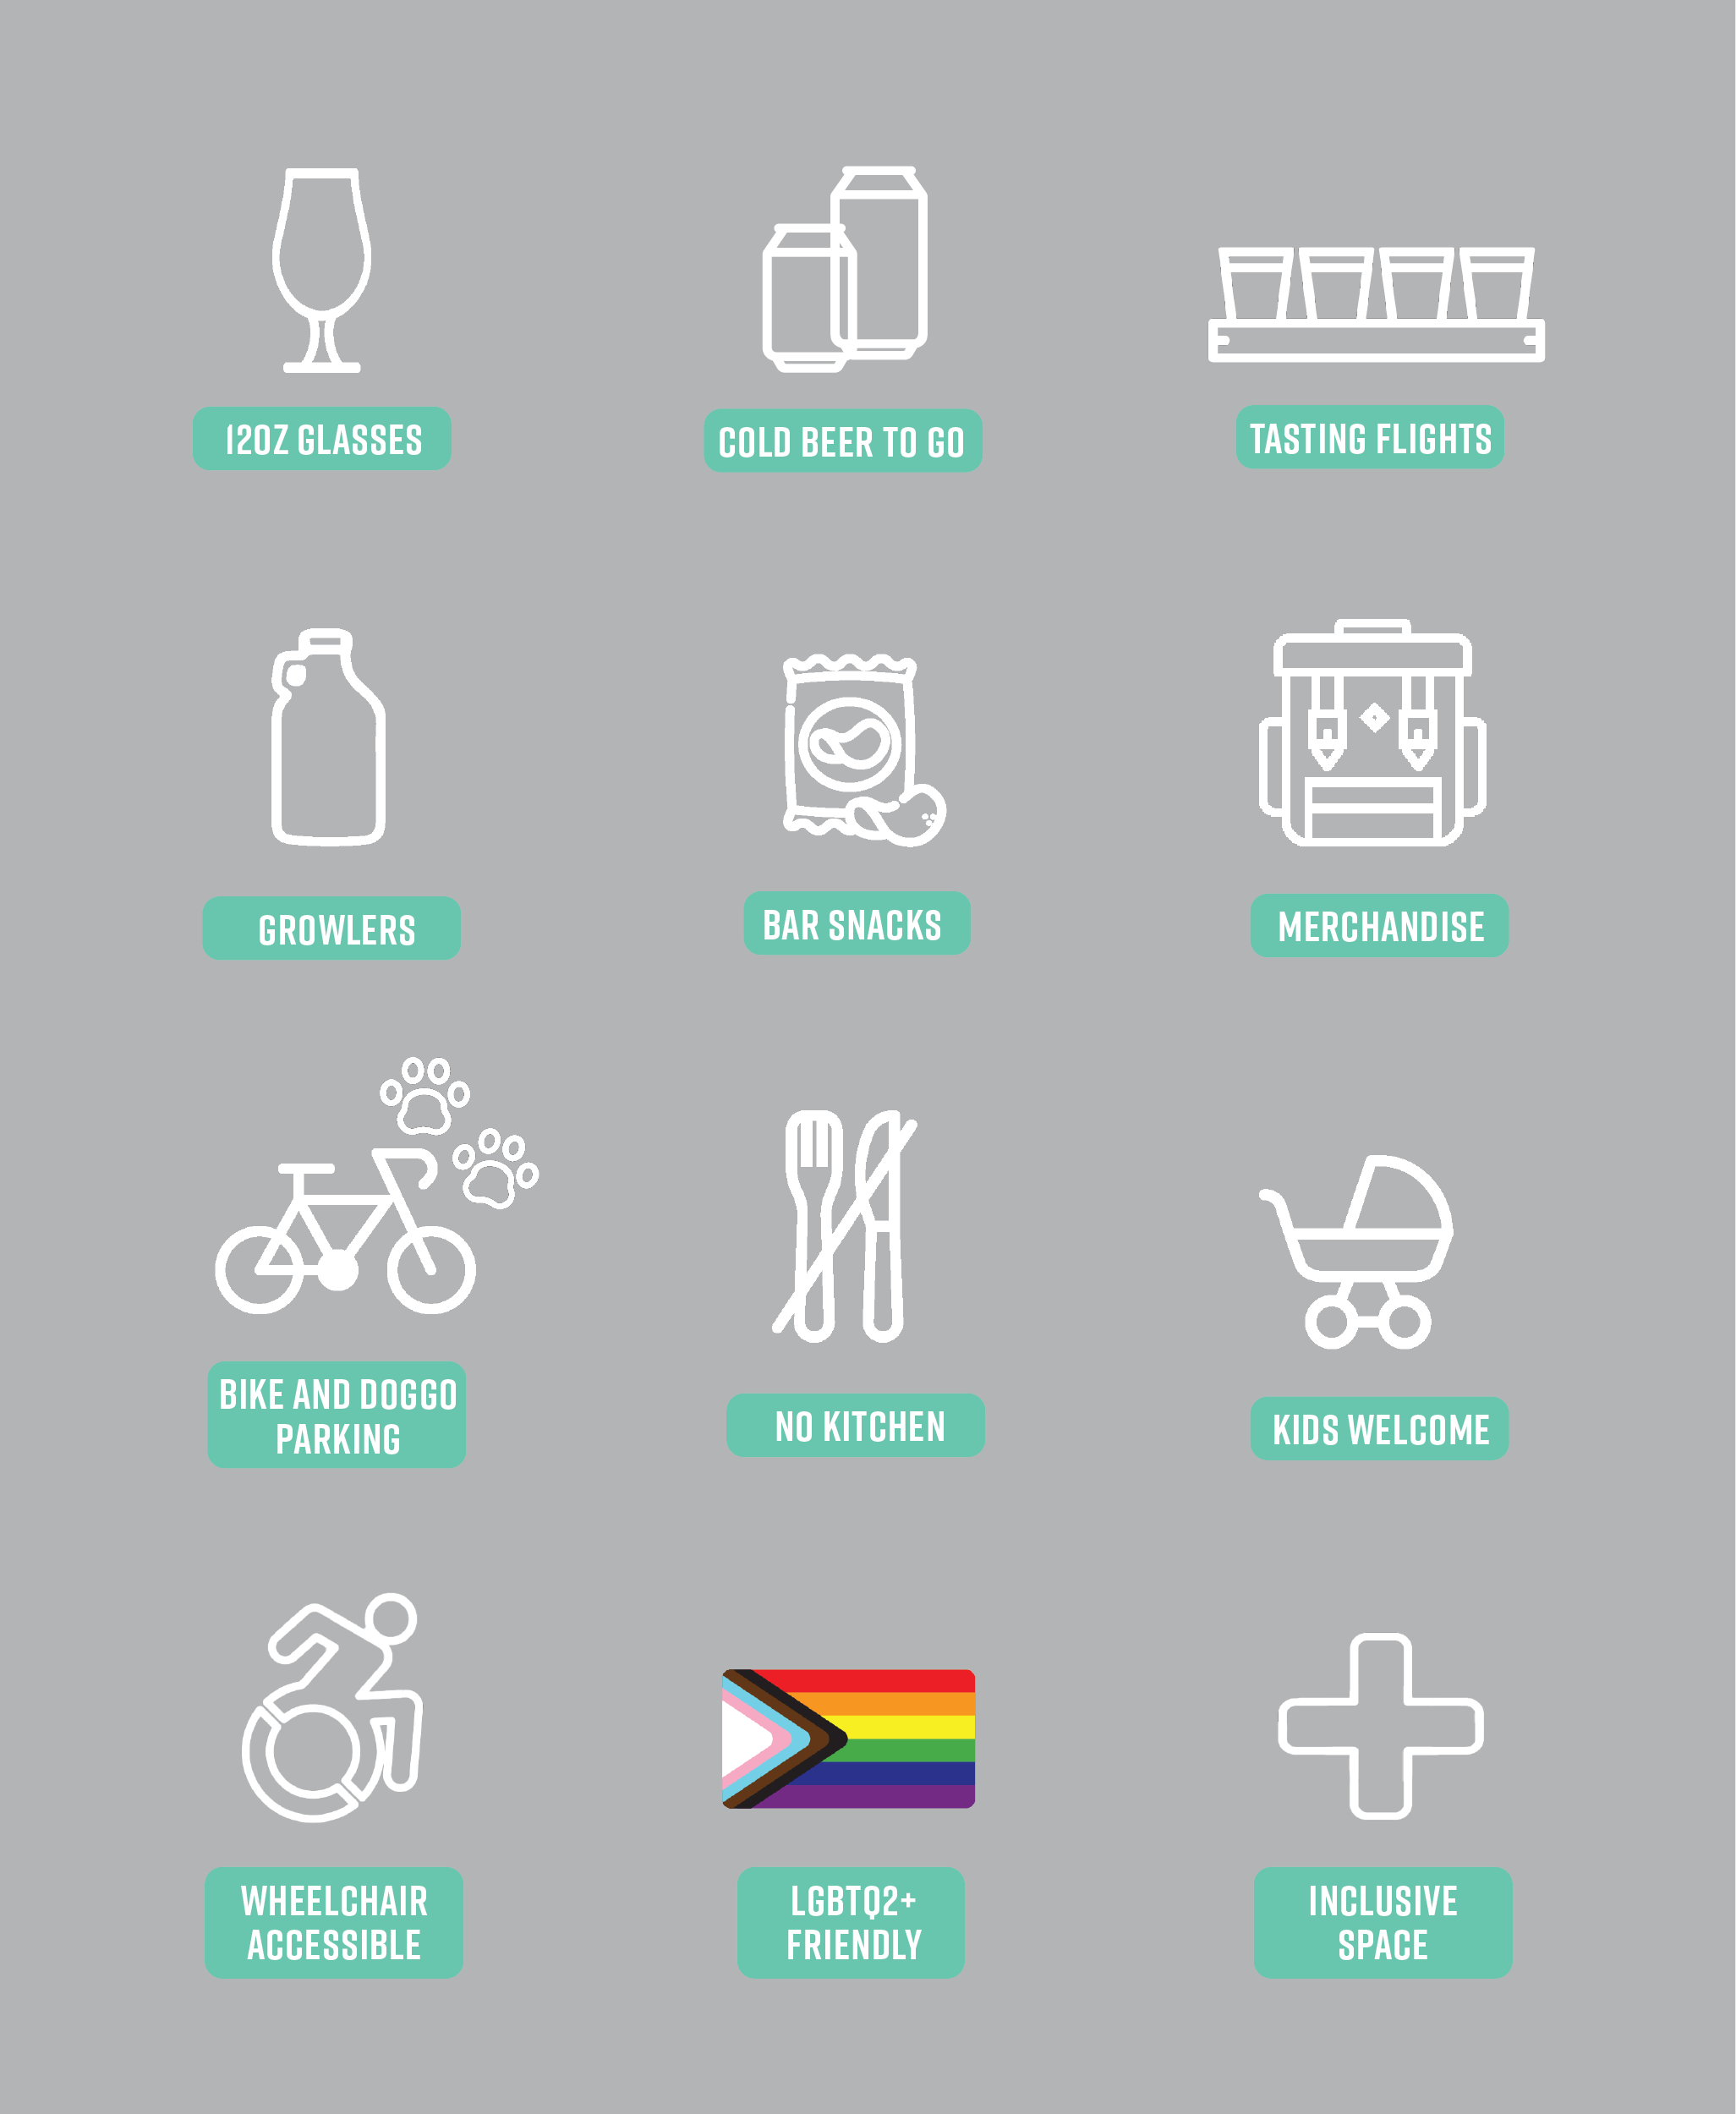 Tasting Room icons highlighting offerings and accessibility